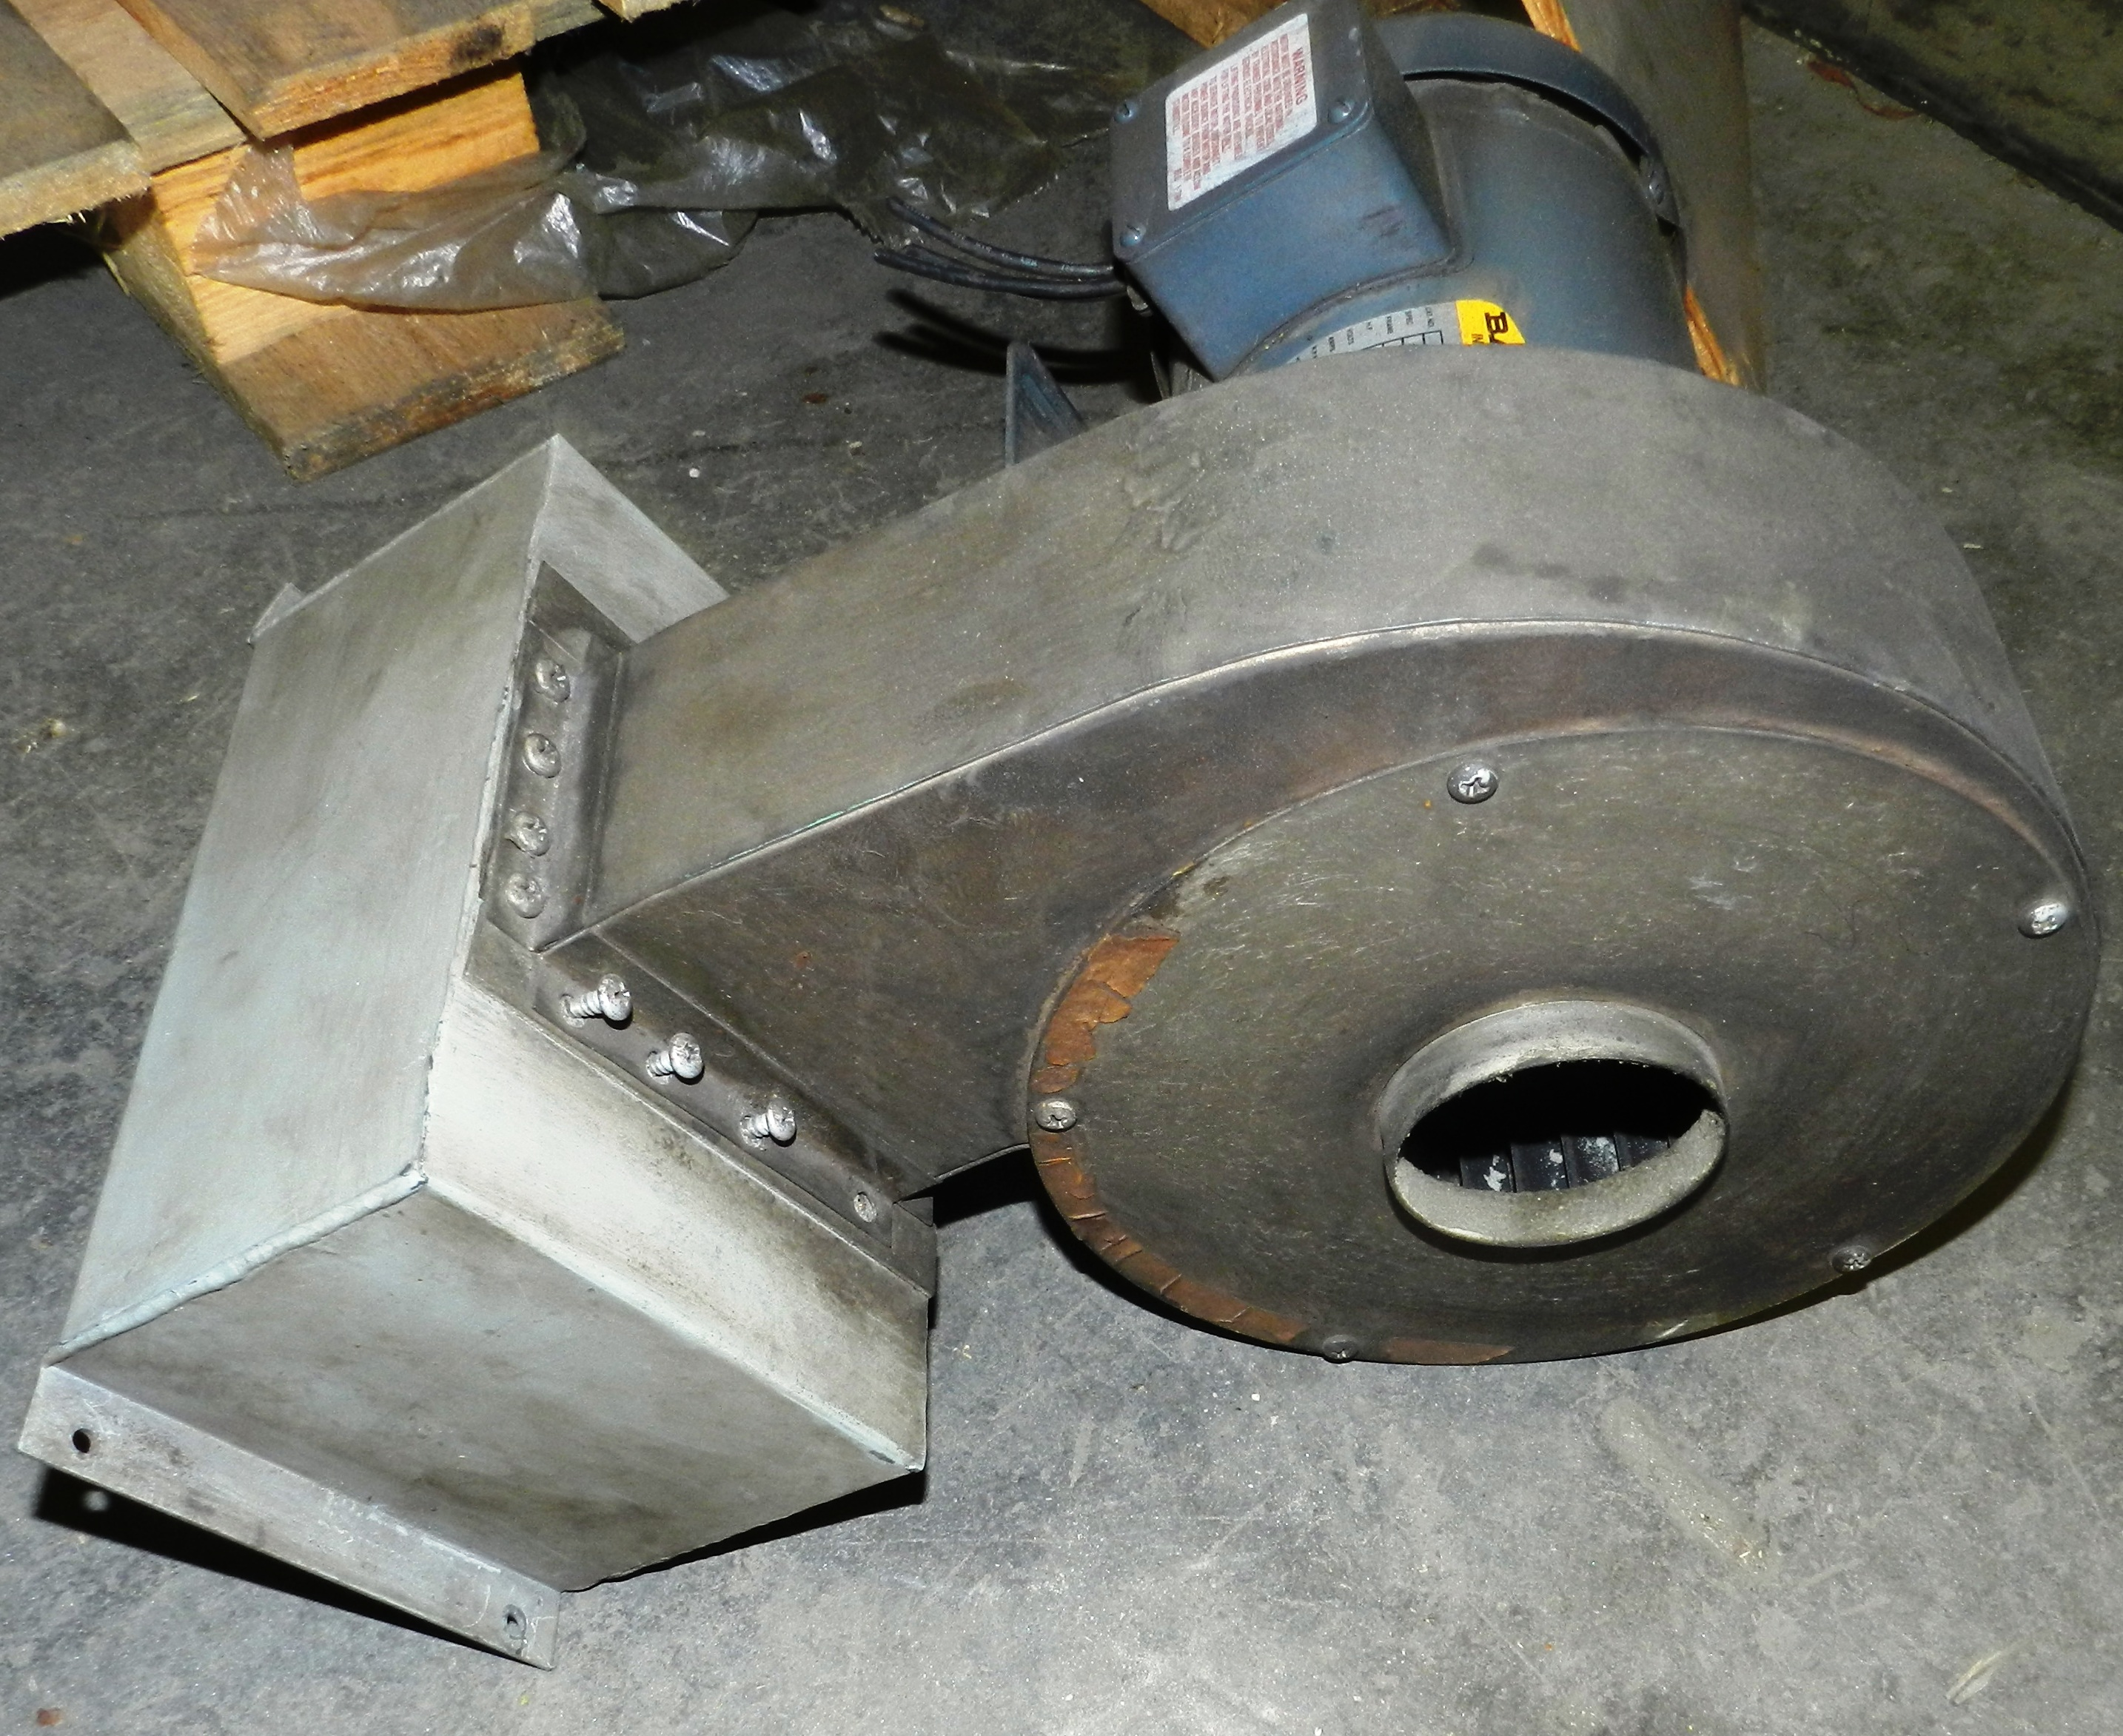 Lot 37 - Baldor 1/3 HP Industrial Motor